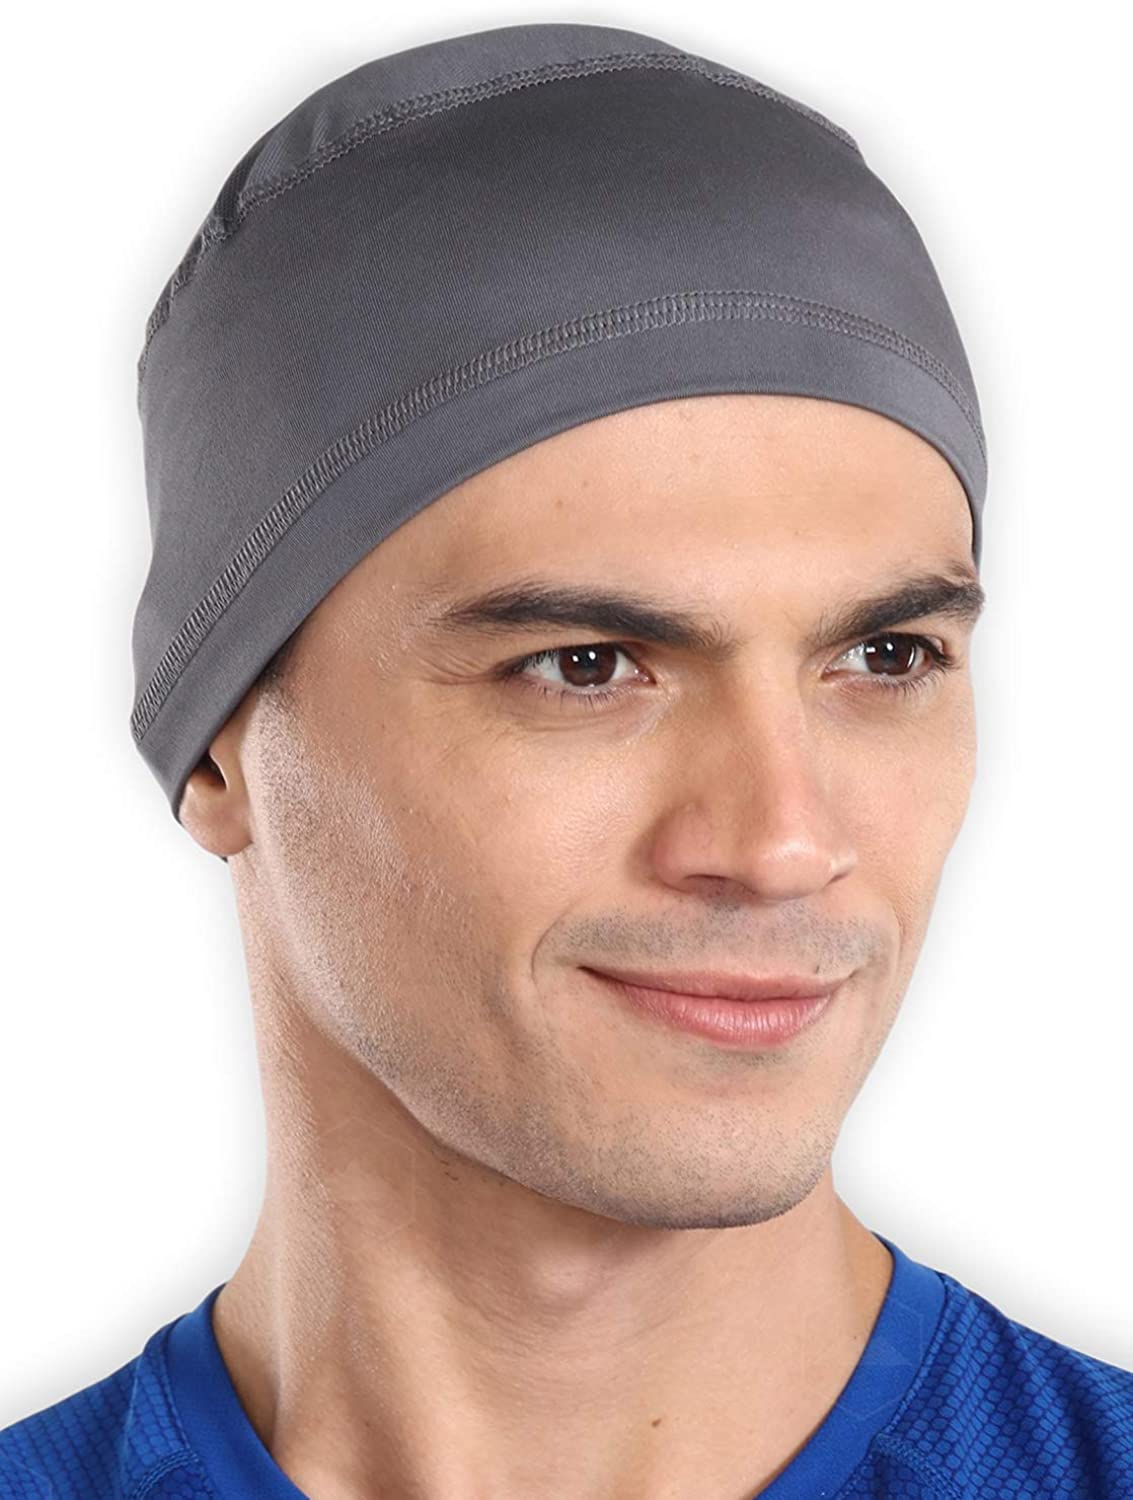 Tough Headwear Sweat Wicking Helmet Liner/Cooling Skull Cap for Men - Helmet & Hard Hat Liner Accessory - UPF 50 Sun Protection